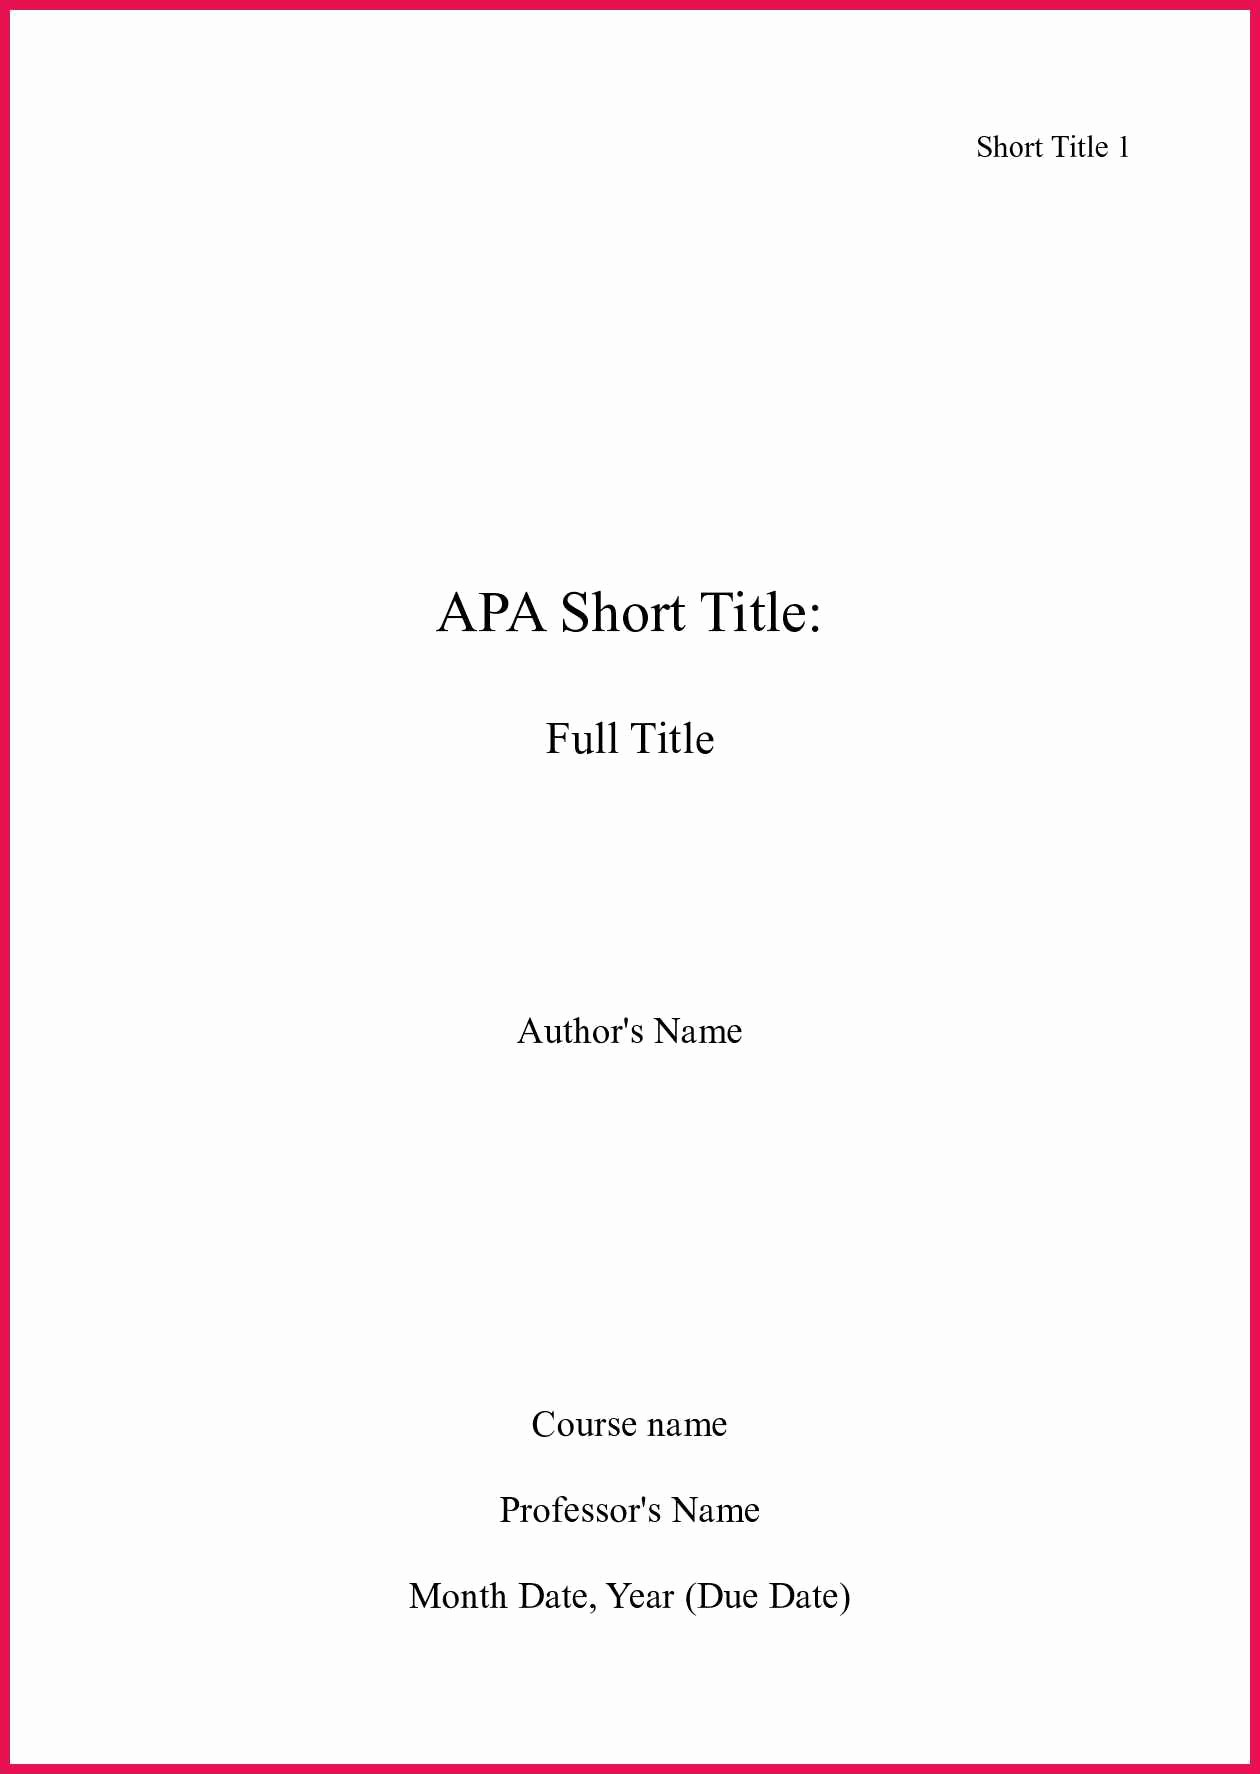 Apa format Cover Page 2016 Beautiful Apa format Cover Page 2016 – Study Tips